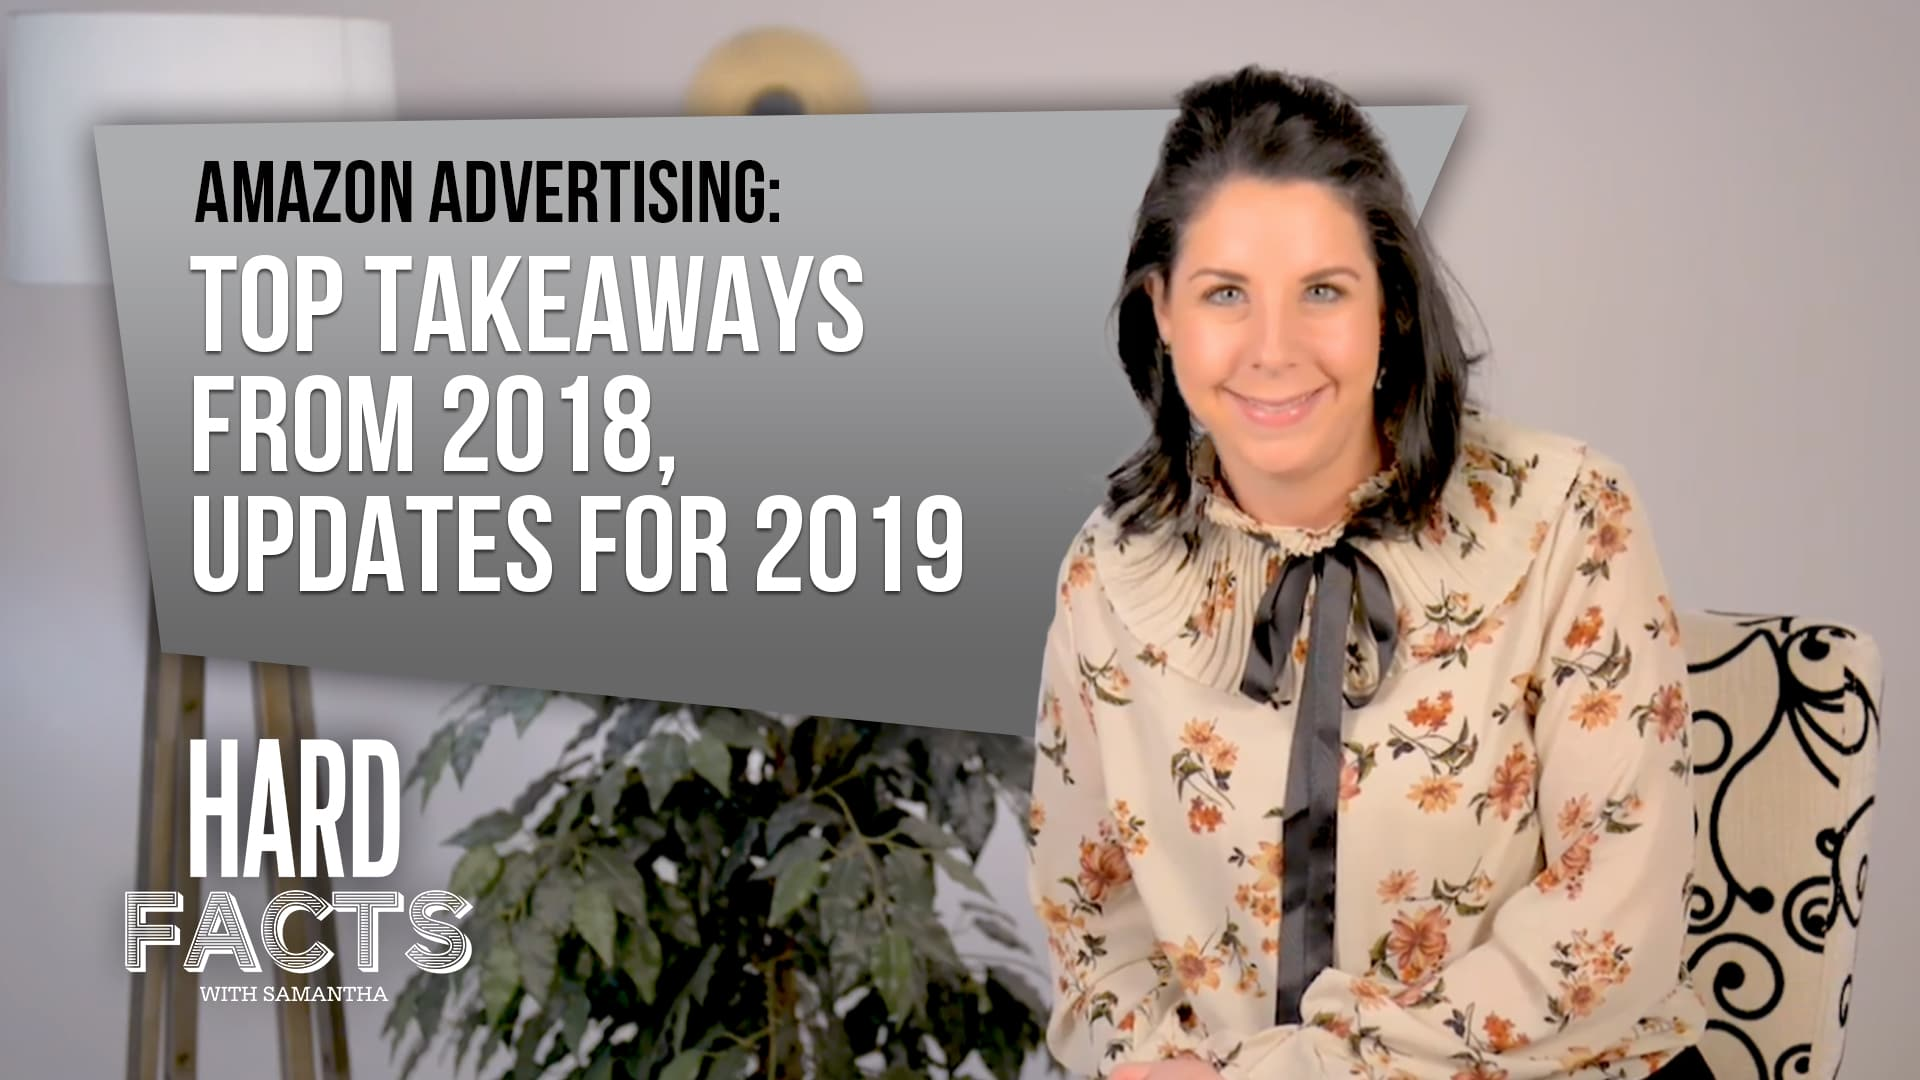 Amazon Advertising – Top Takeaways from 2018, Updates for 2019